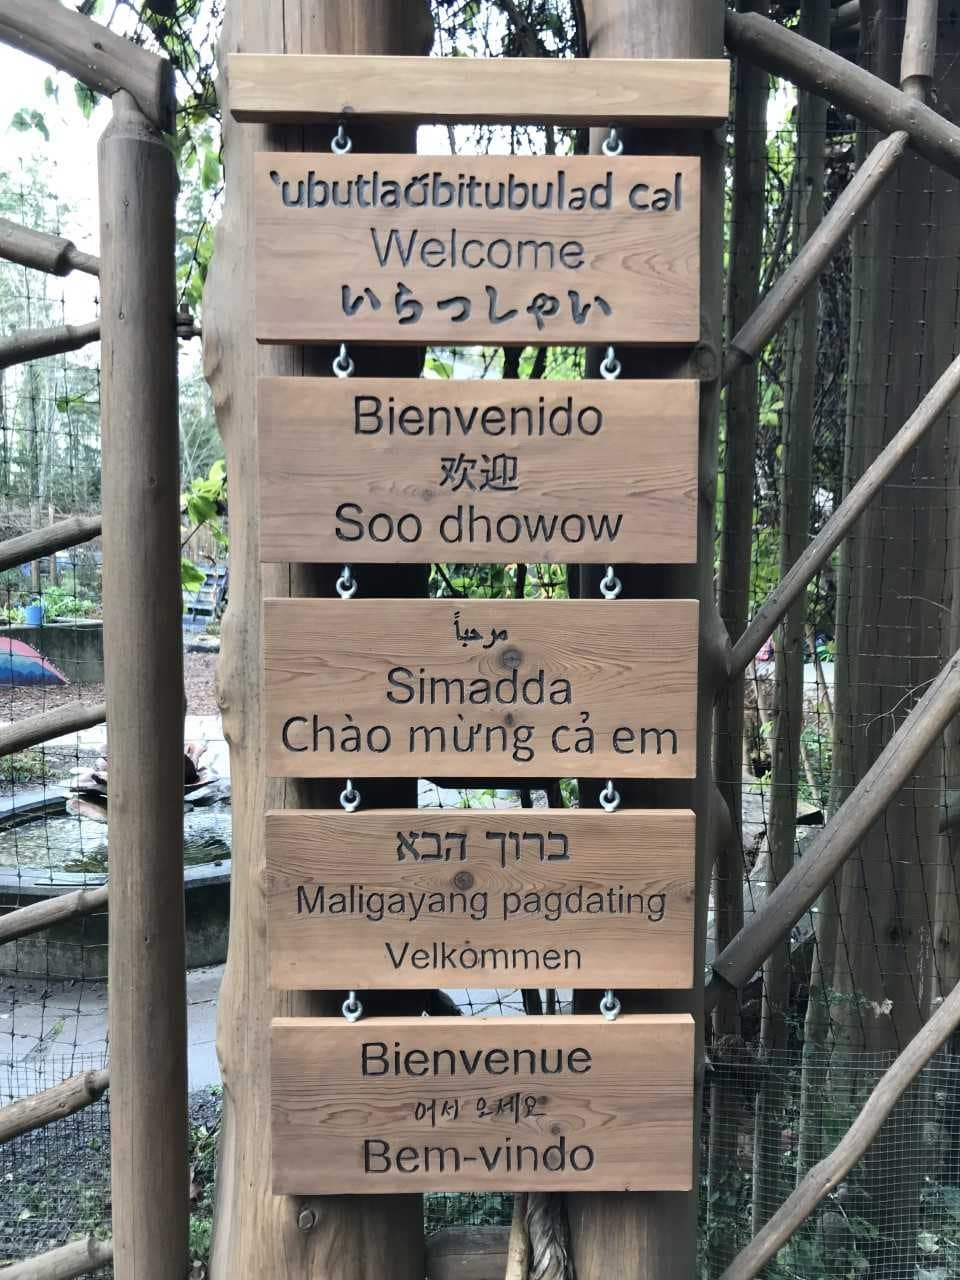 A close-up photo of the different languages represented on the garden welcome sign.